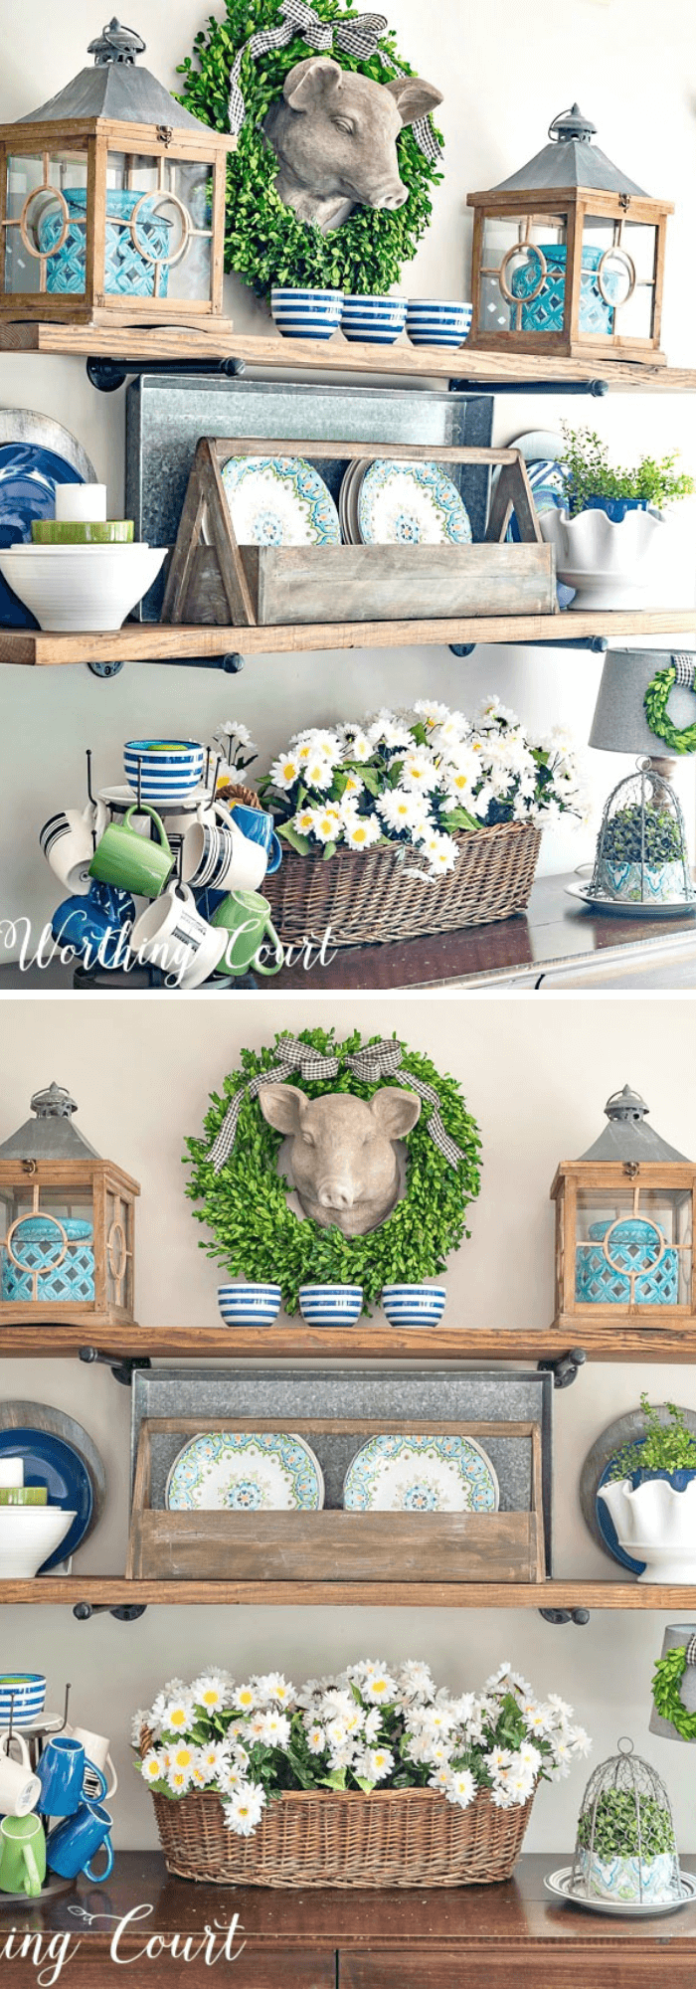 Summer Farmhouse Decor Ideas & Designs Summer farmhouse self decor